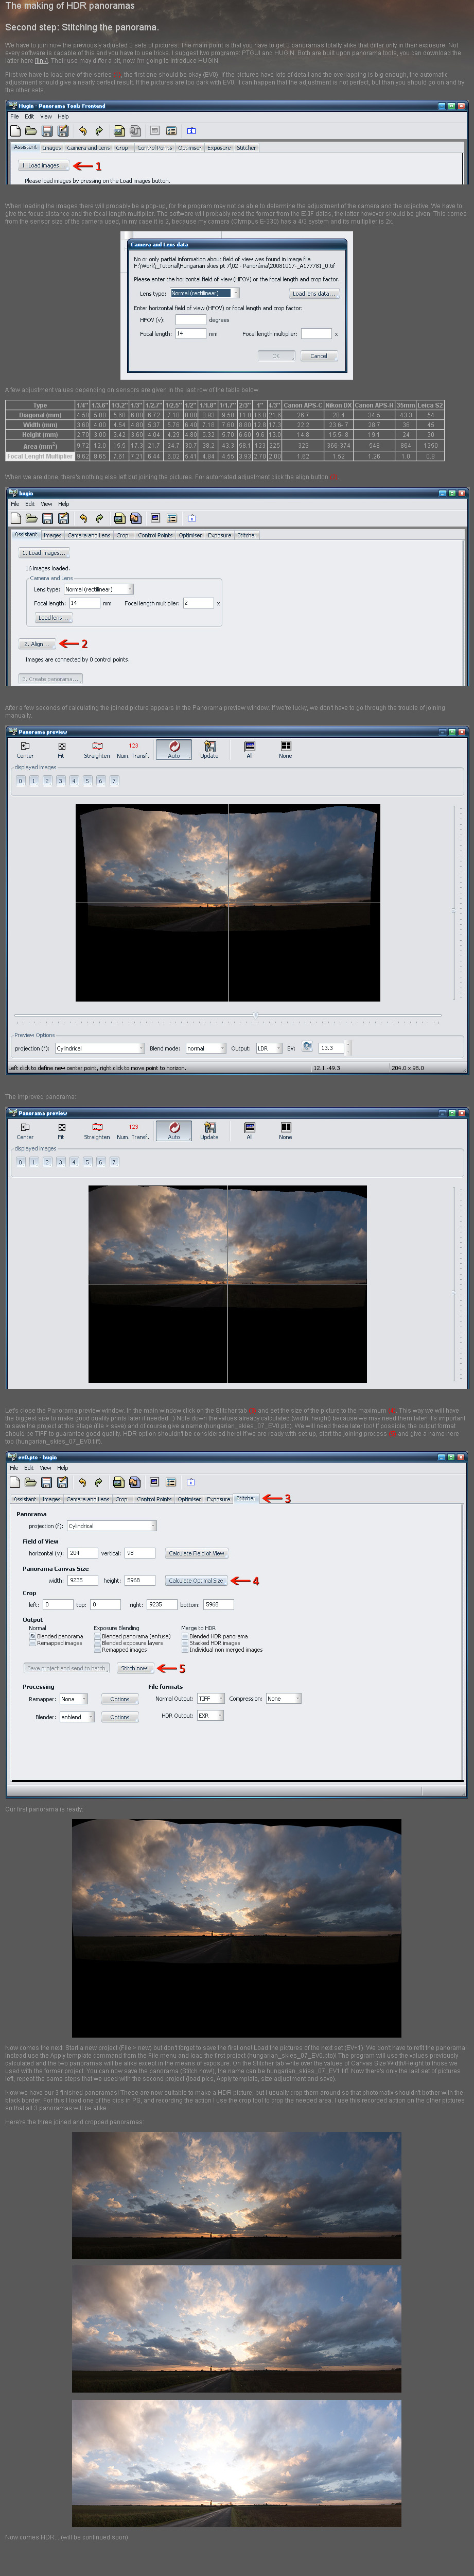 HDR panorama tutorial part.II. by realityDream